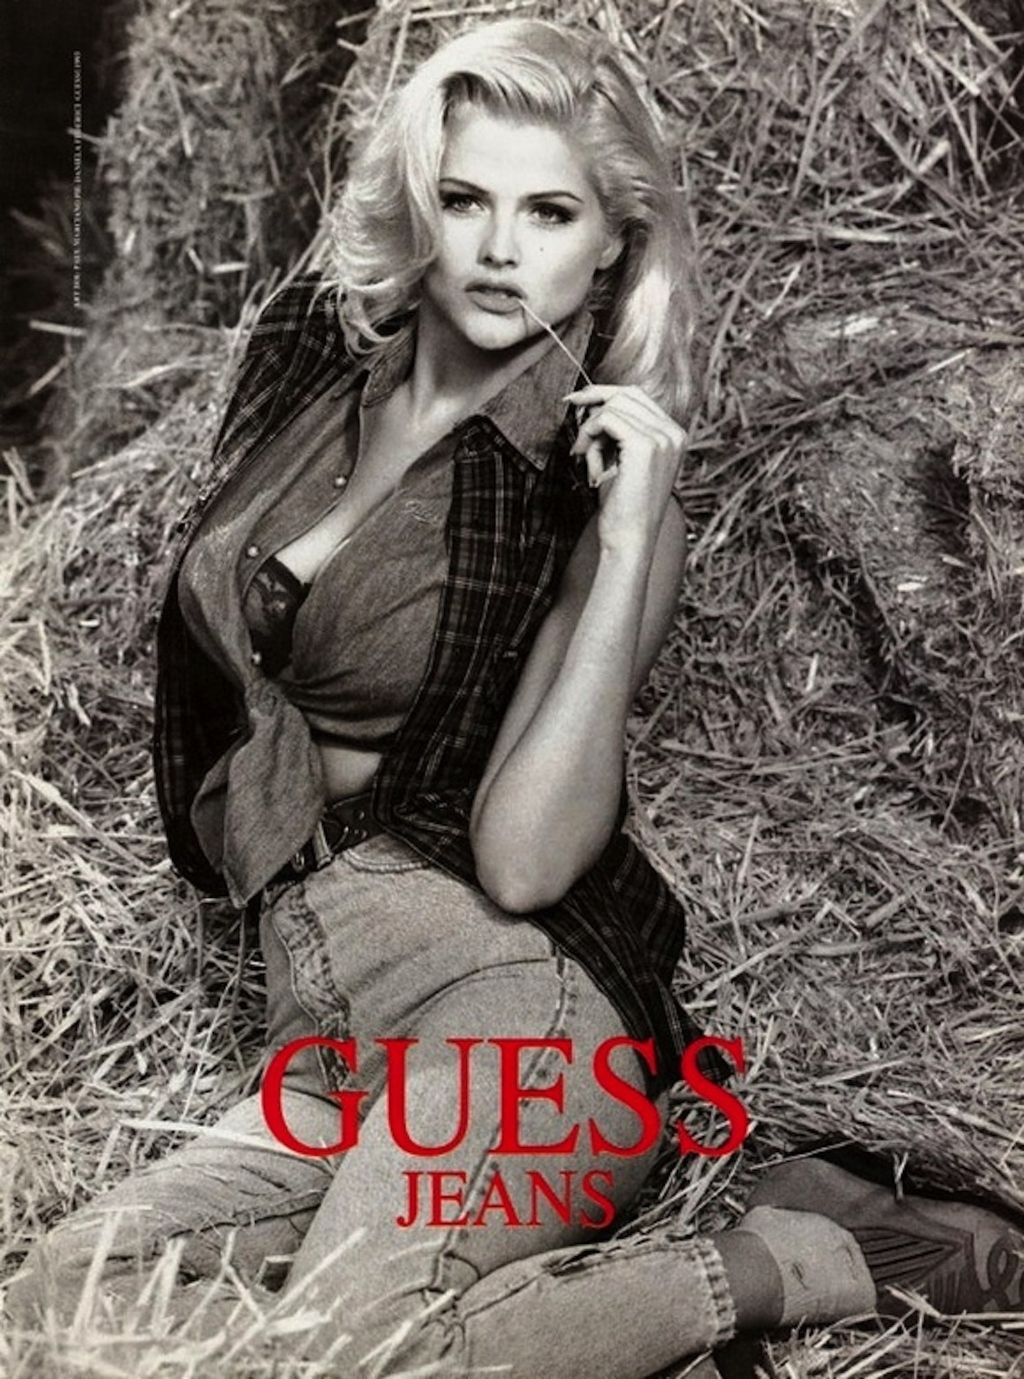 20 Gorgeous Photos From Anna Nicole Smith's Guess Campaign ...